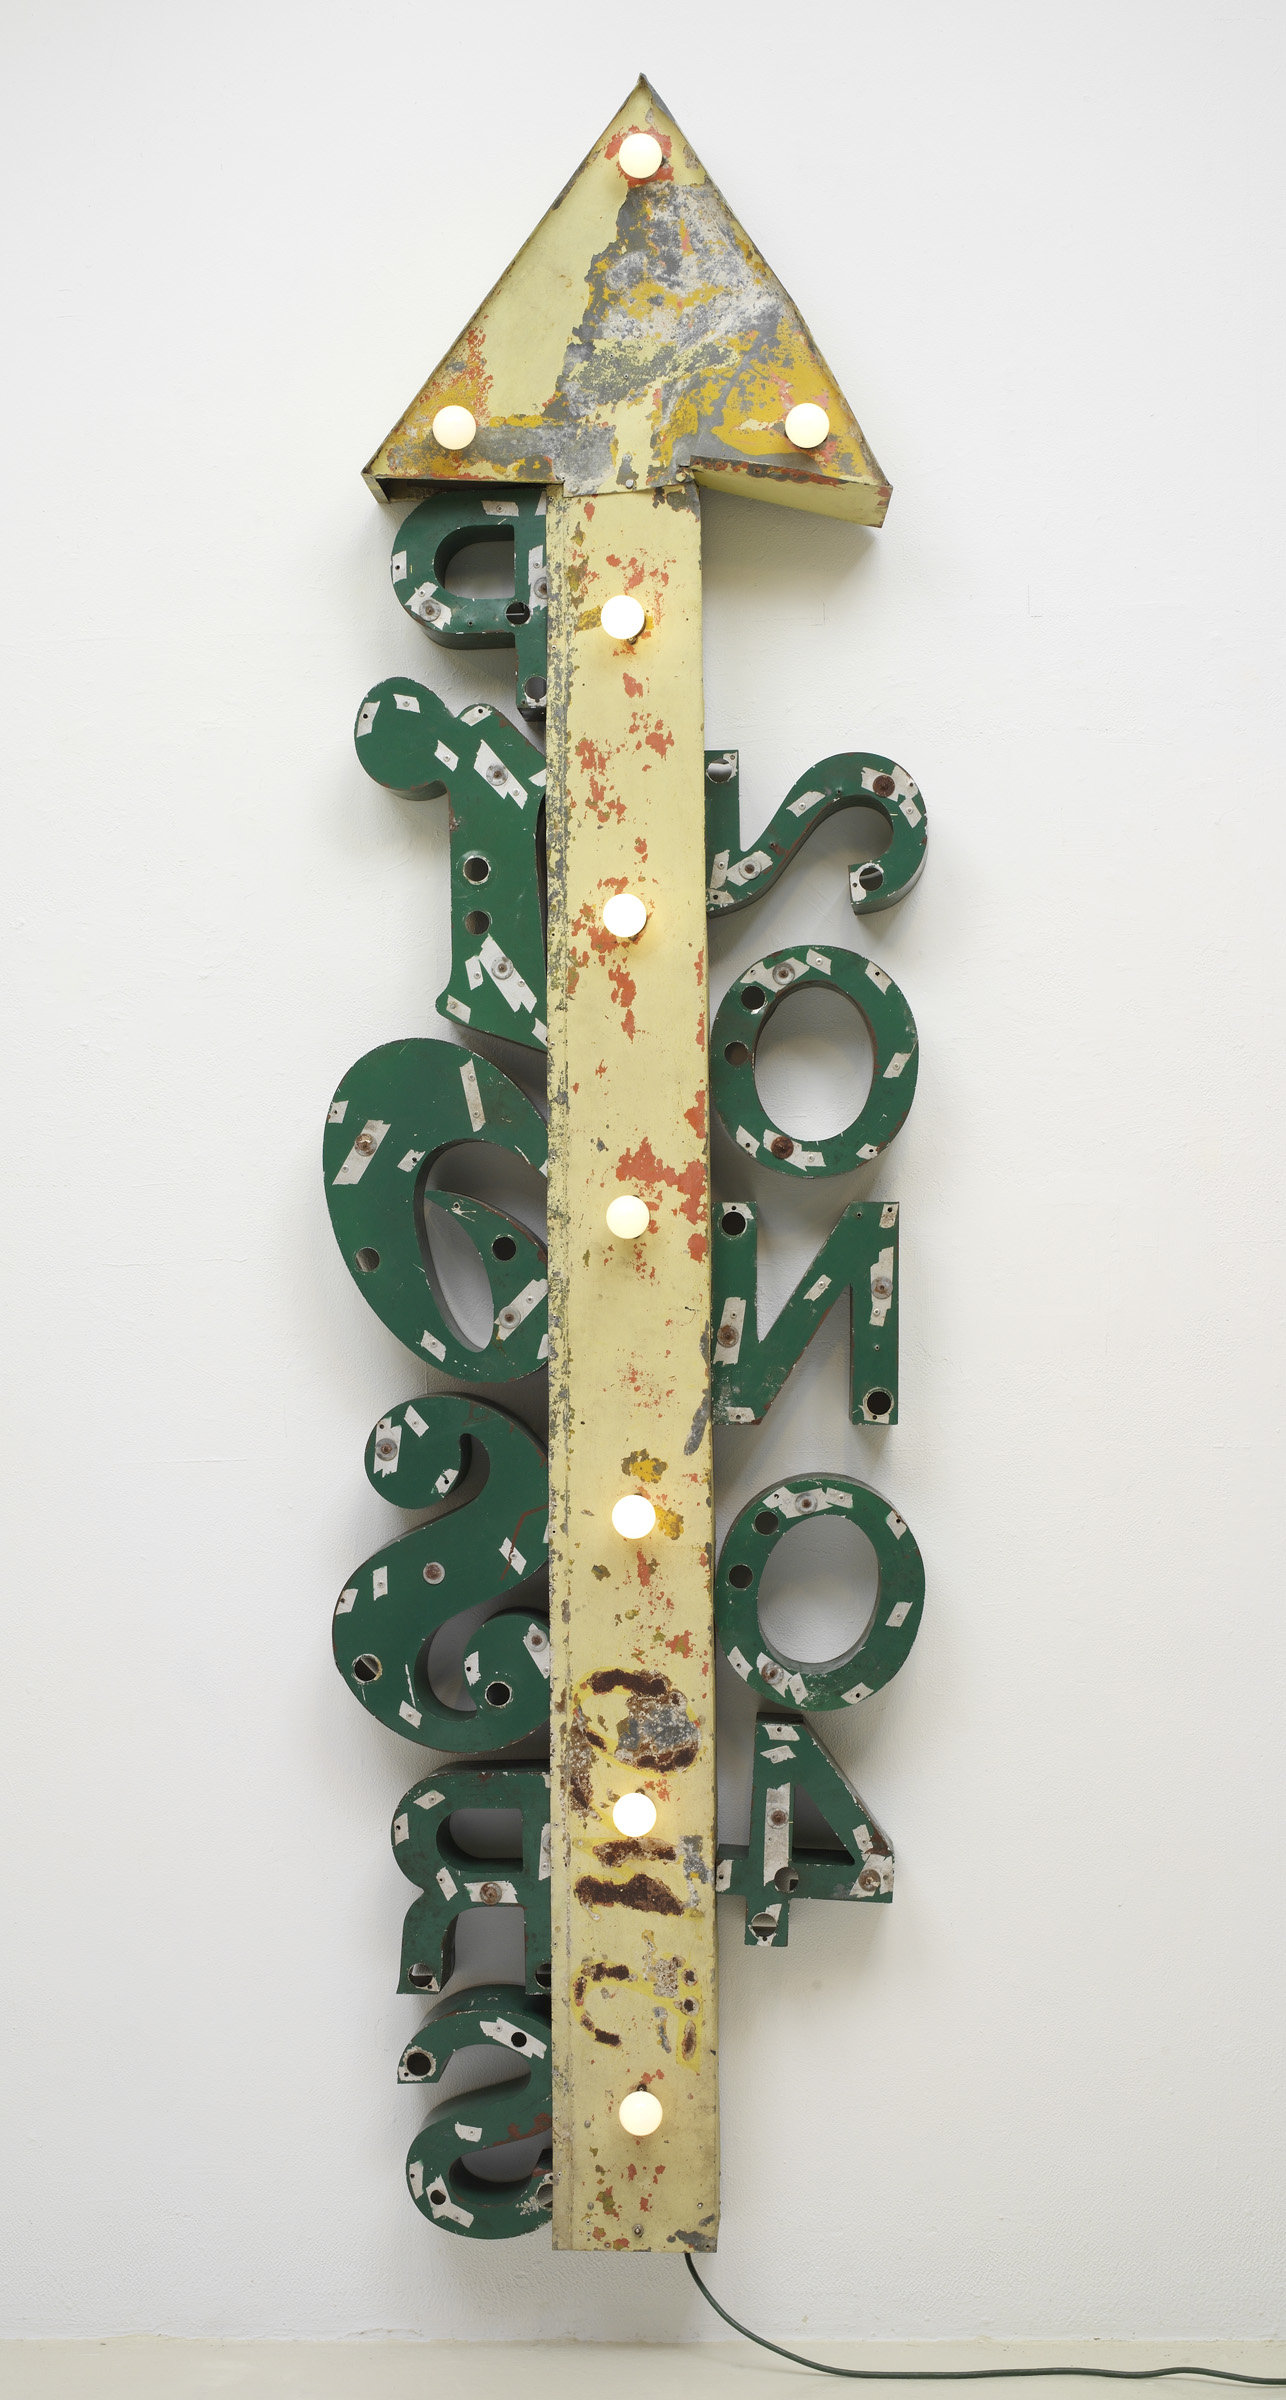 ", 1992. Aluminum, steel, electric lights and timing device, 9' 9"" x 2' 9"" x 1' (297.2 cm x 83.8 cm x 30.5 cm)."